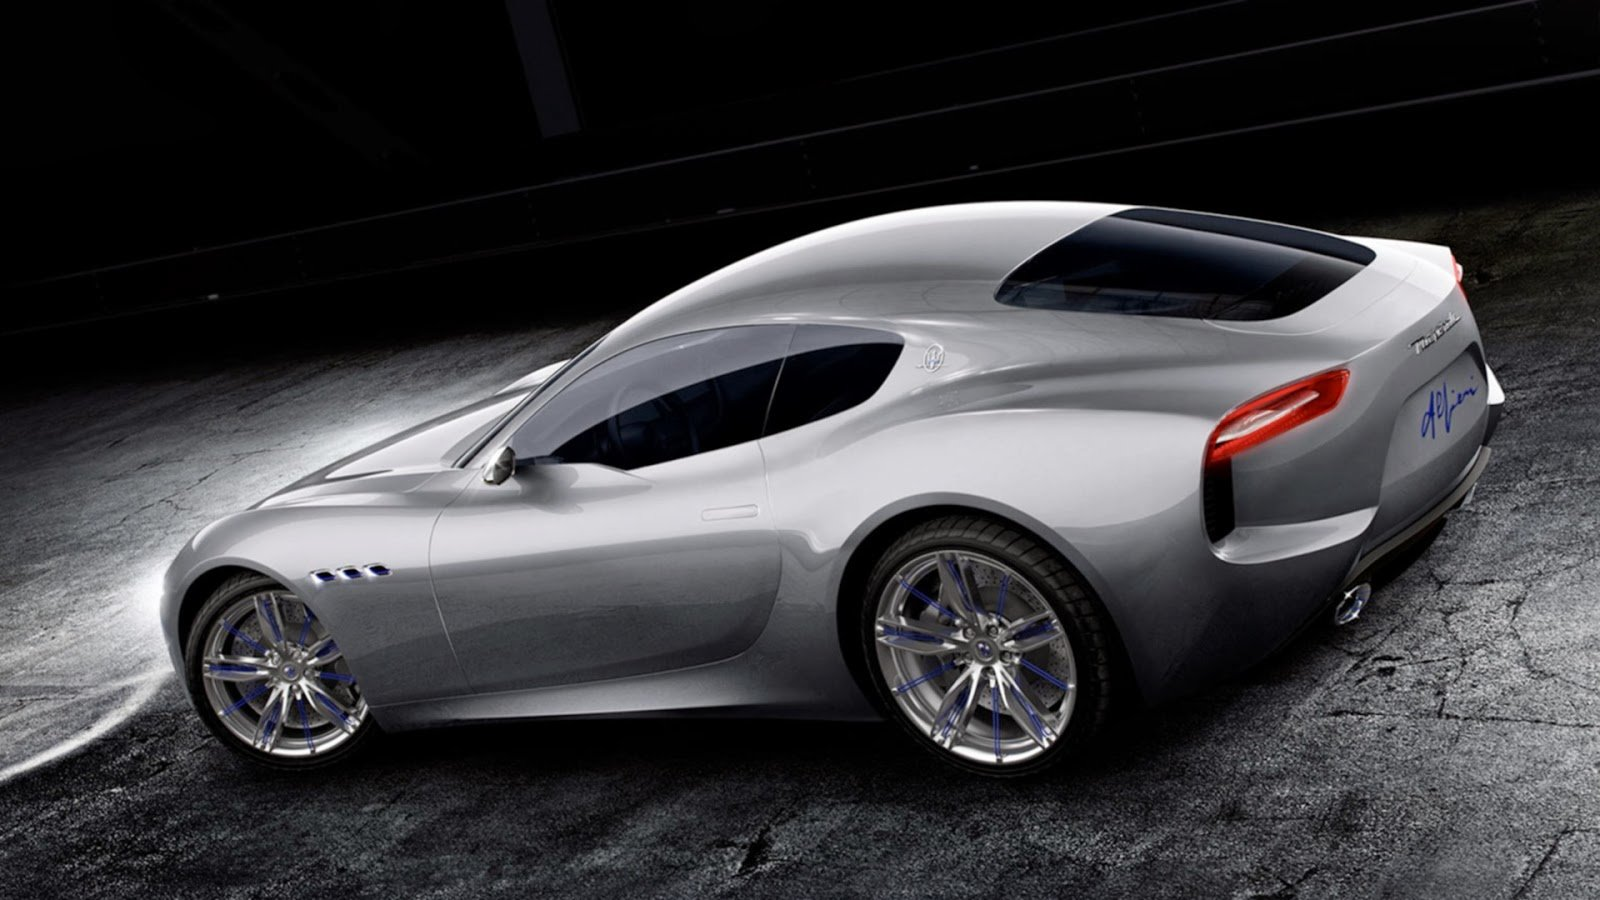 Latest Maserati Alfieri Concept Car Hd Wallpaper With Cars Free Download